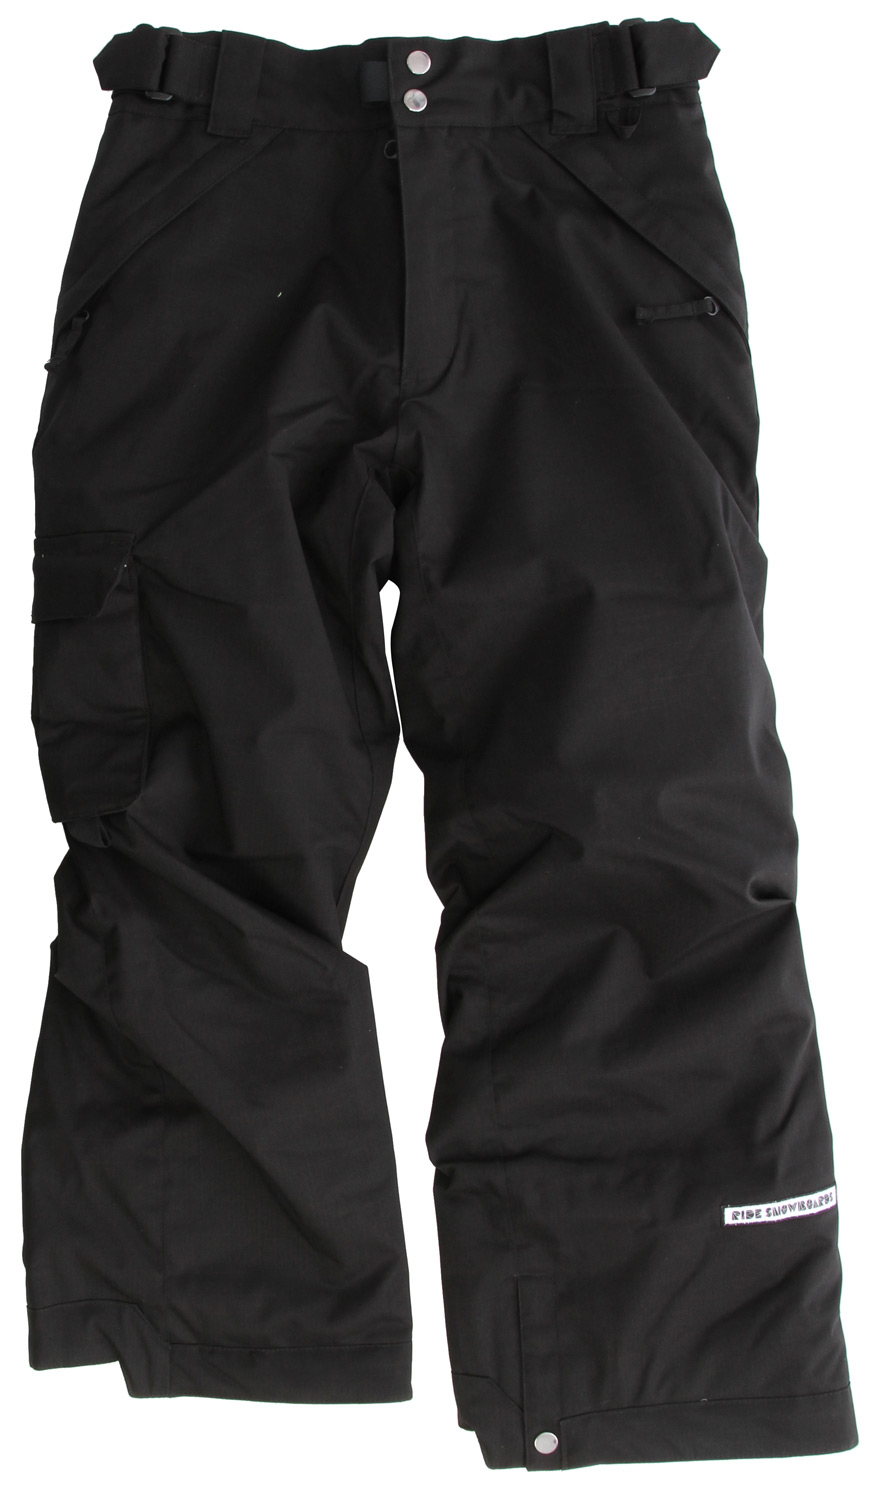 "Snowboard The Ride Dart youth snowboard pant is built tough with a 5k/5k waterproof breathable rating, Critically Taped Seams and an 80g Poly Insulation so your up-and-comer stays warm and dry, up until last chair!Key Features of the Ride Dart Snowboard Pants: 5,000mm Waterproof 5,000g Breathability 80g Poly Insulation with Taffeta Lining Side Pocket and Back Pockets Growth Seams at the Pant Hem That Extend out 1 1/2"" in Length Adjustable, Double-Snap Elastic Waist Closure Velvety Tricot Inner Waist, Butt and Fly Shred-Free Slightly Higher Pant Leg Back Boot Gaiters Lift Ticket Self-Fabric Loop Kids' snowboard pant with front Micro-Fleece Lined Toaster Pockets - $70.95"